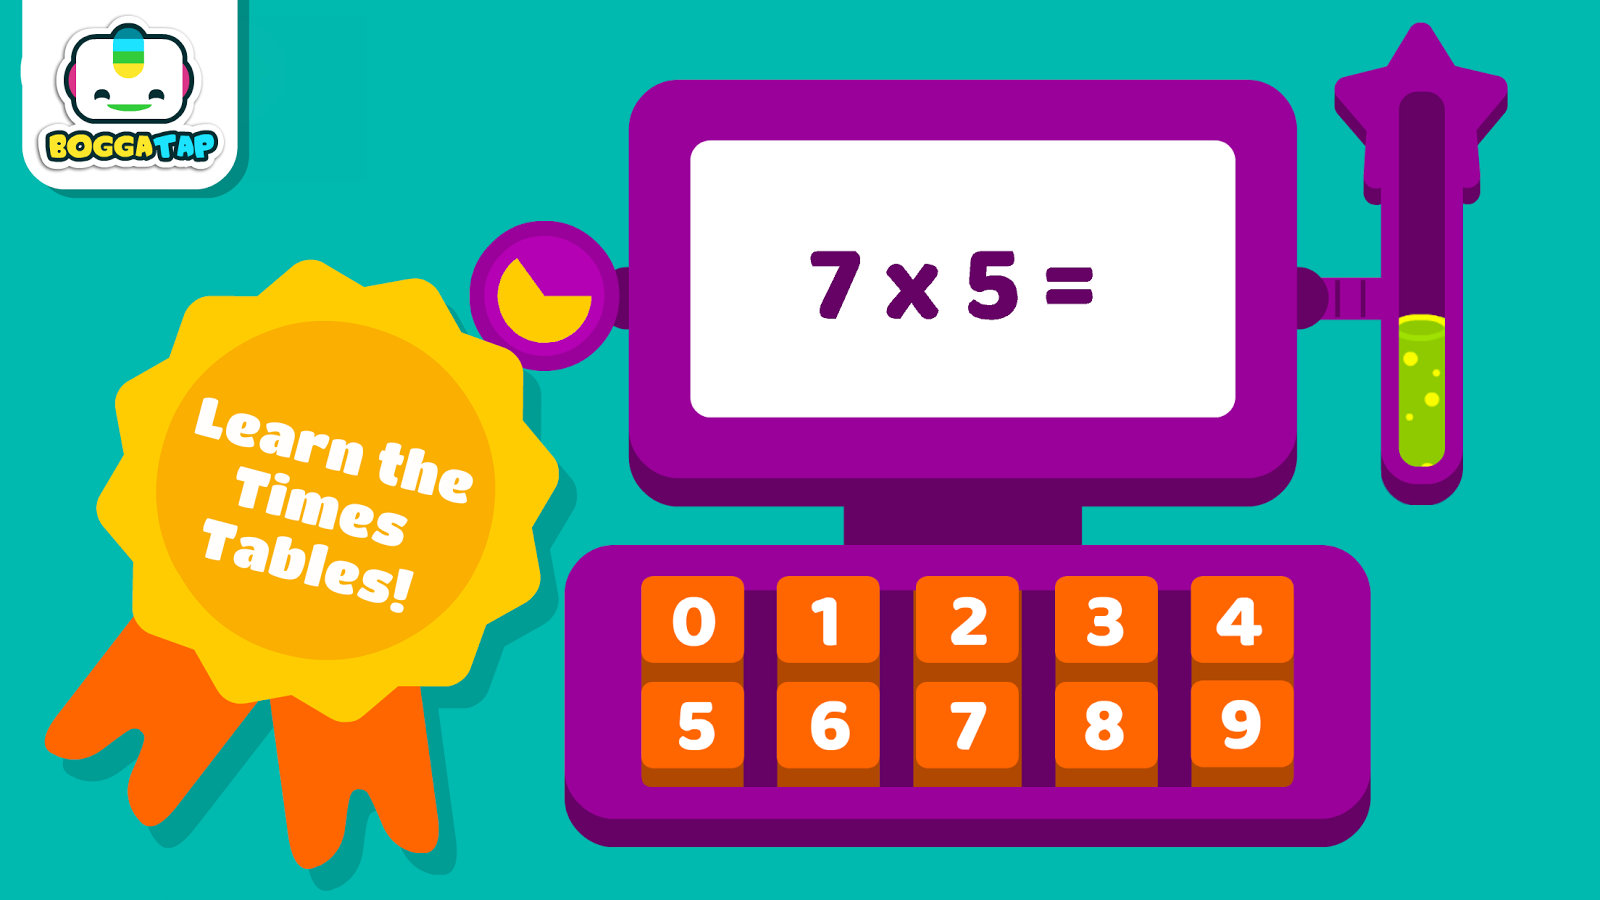 Bogga Times Tables - for kids- screenshot